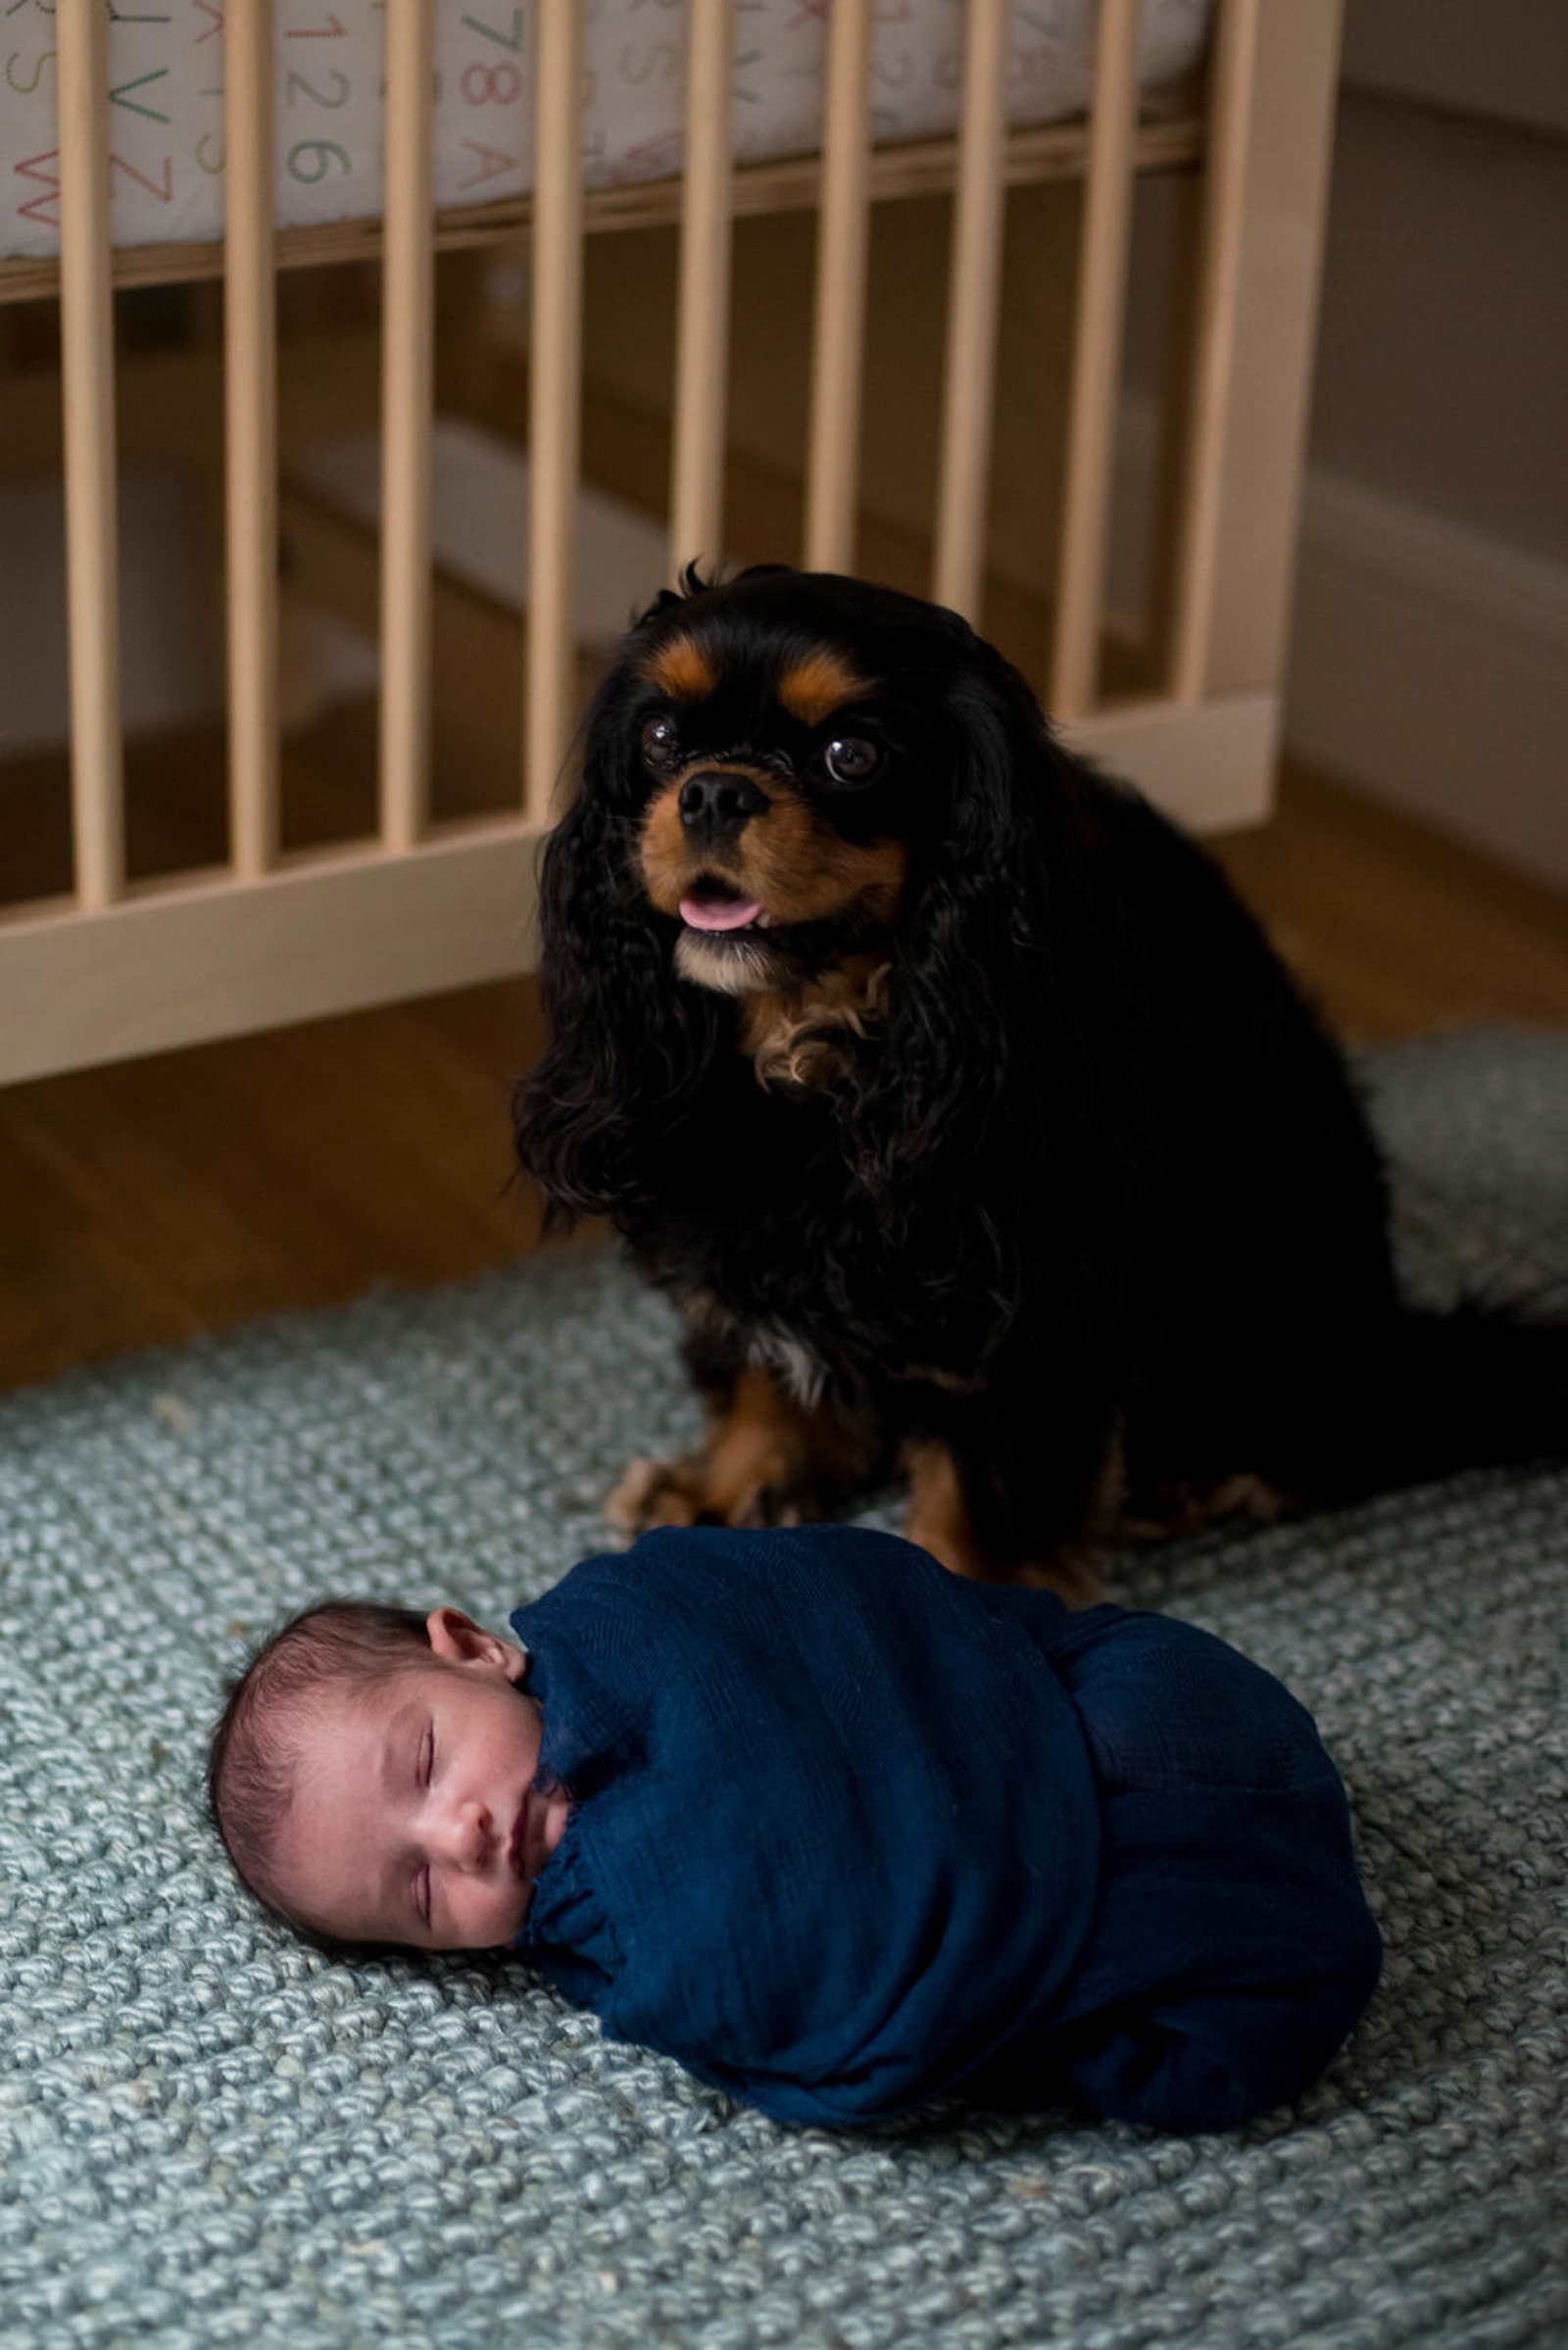 Newborn posed in home with dog in Boston